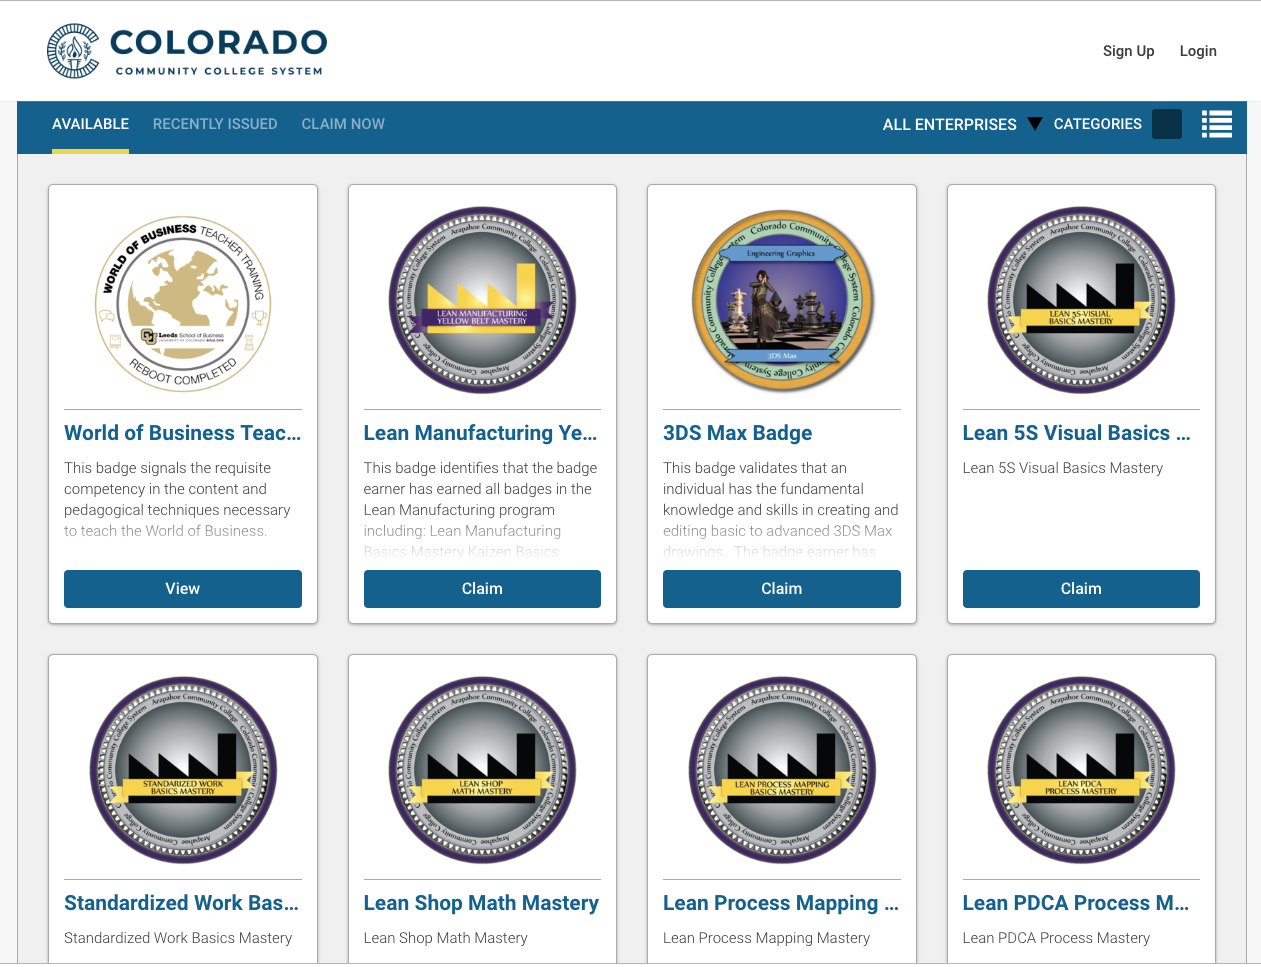 The Colorado Community College System offers a wide range of digital badging options.